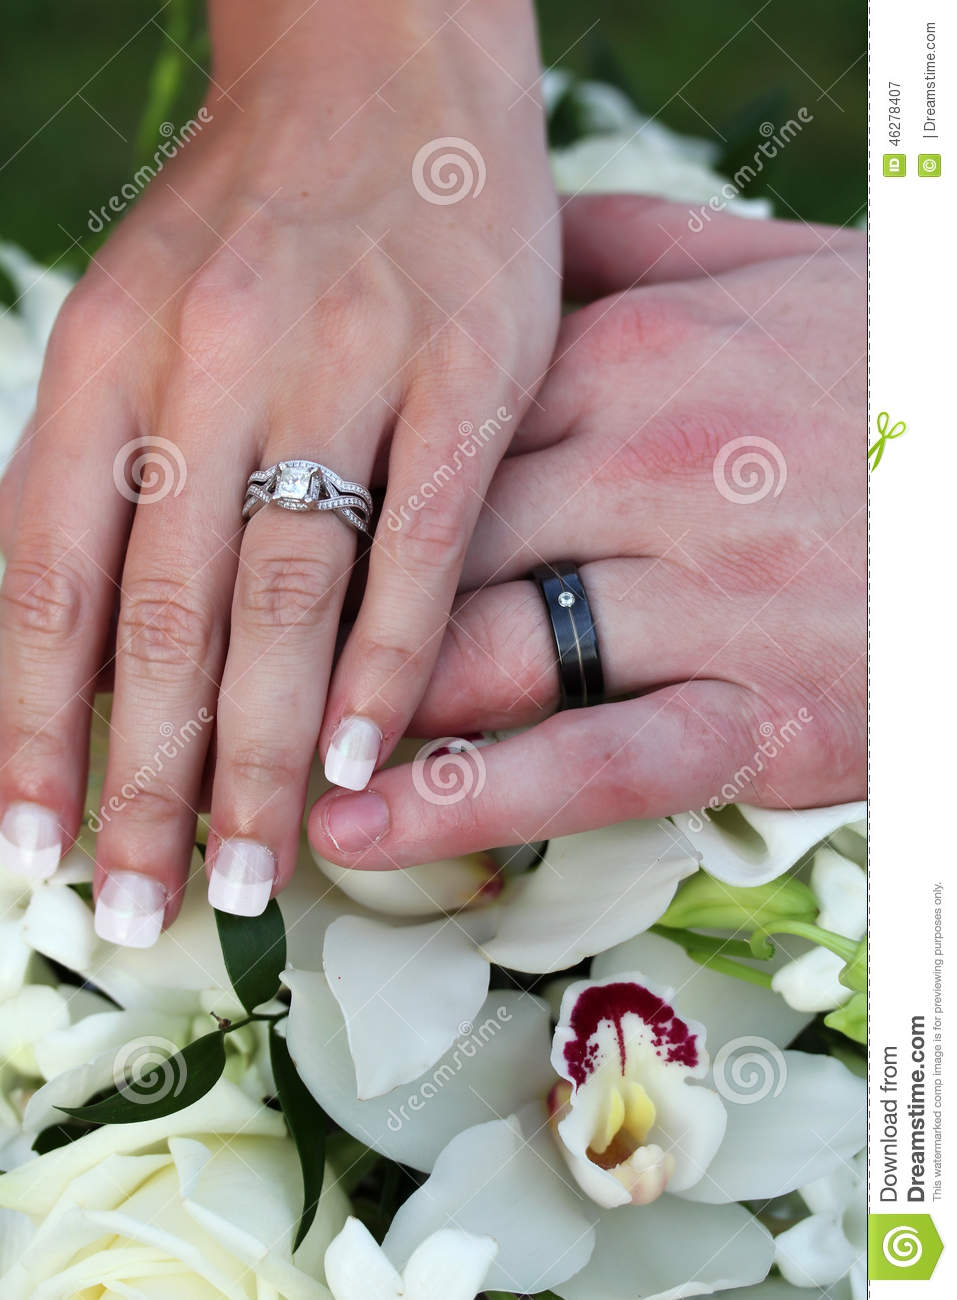 Wedding Rings & Flowers stock image. Image of bride, marriage - 46278407